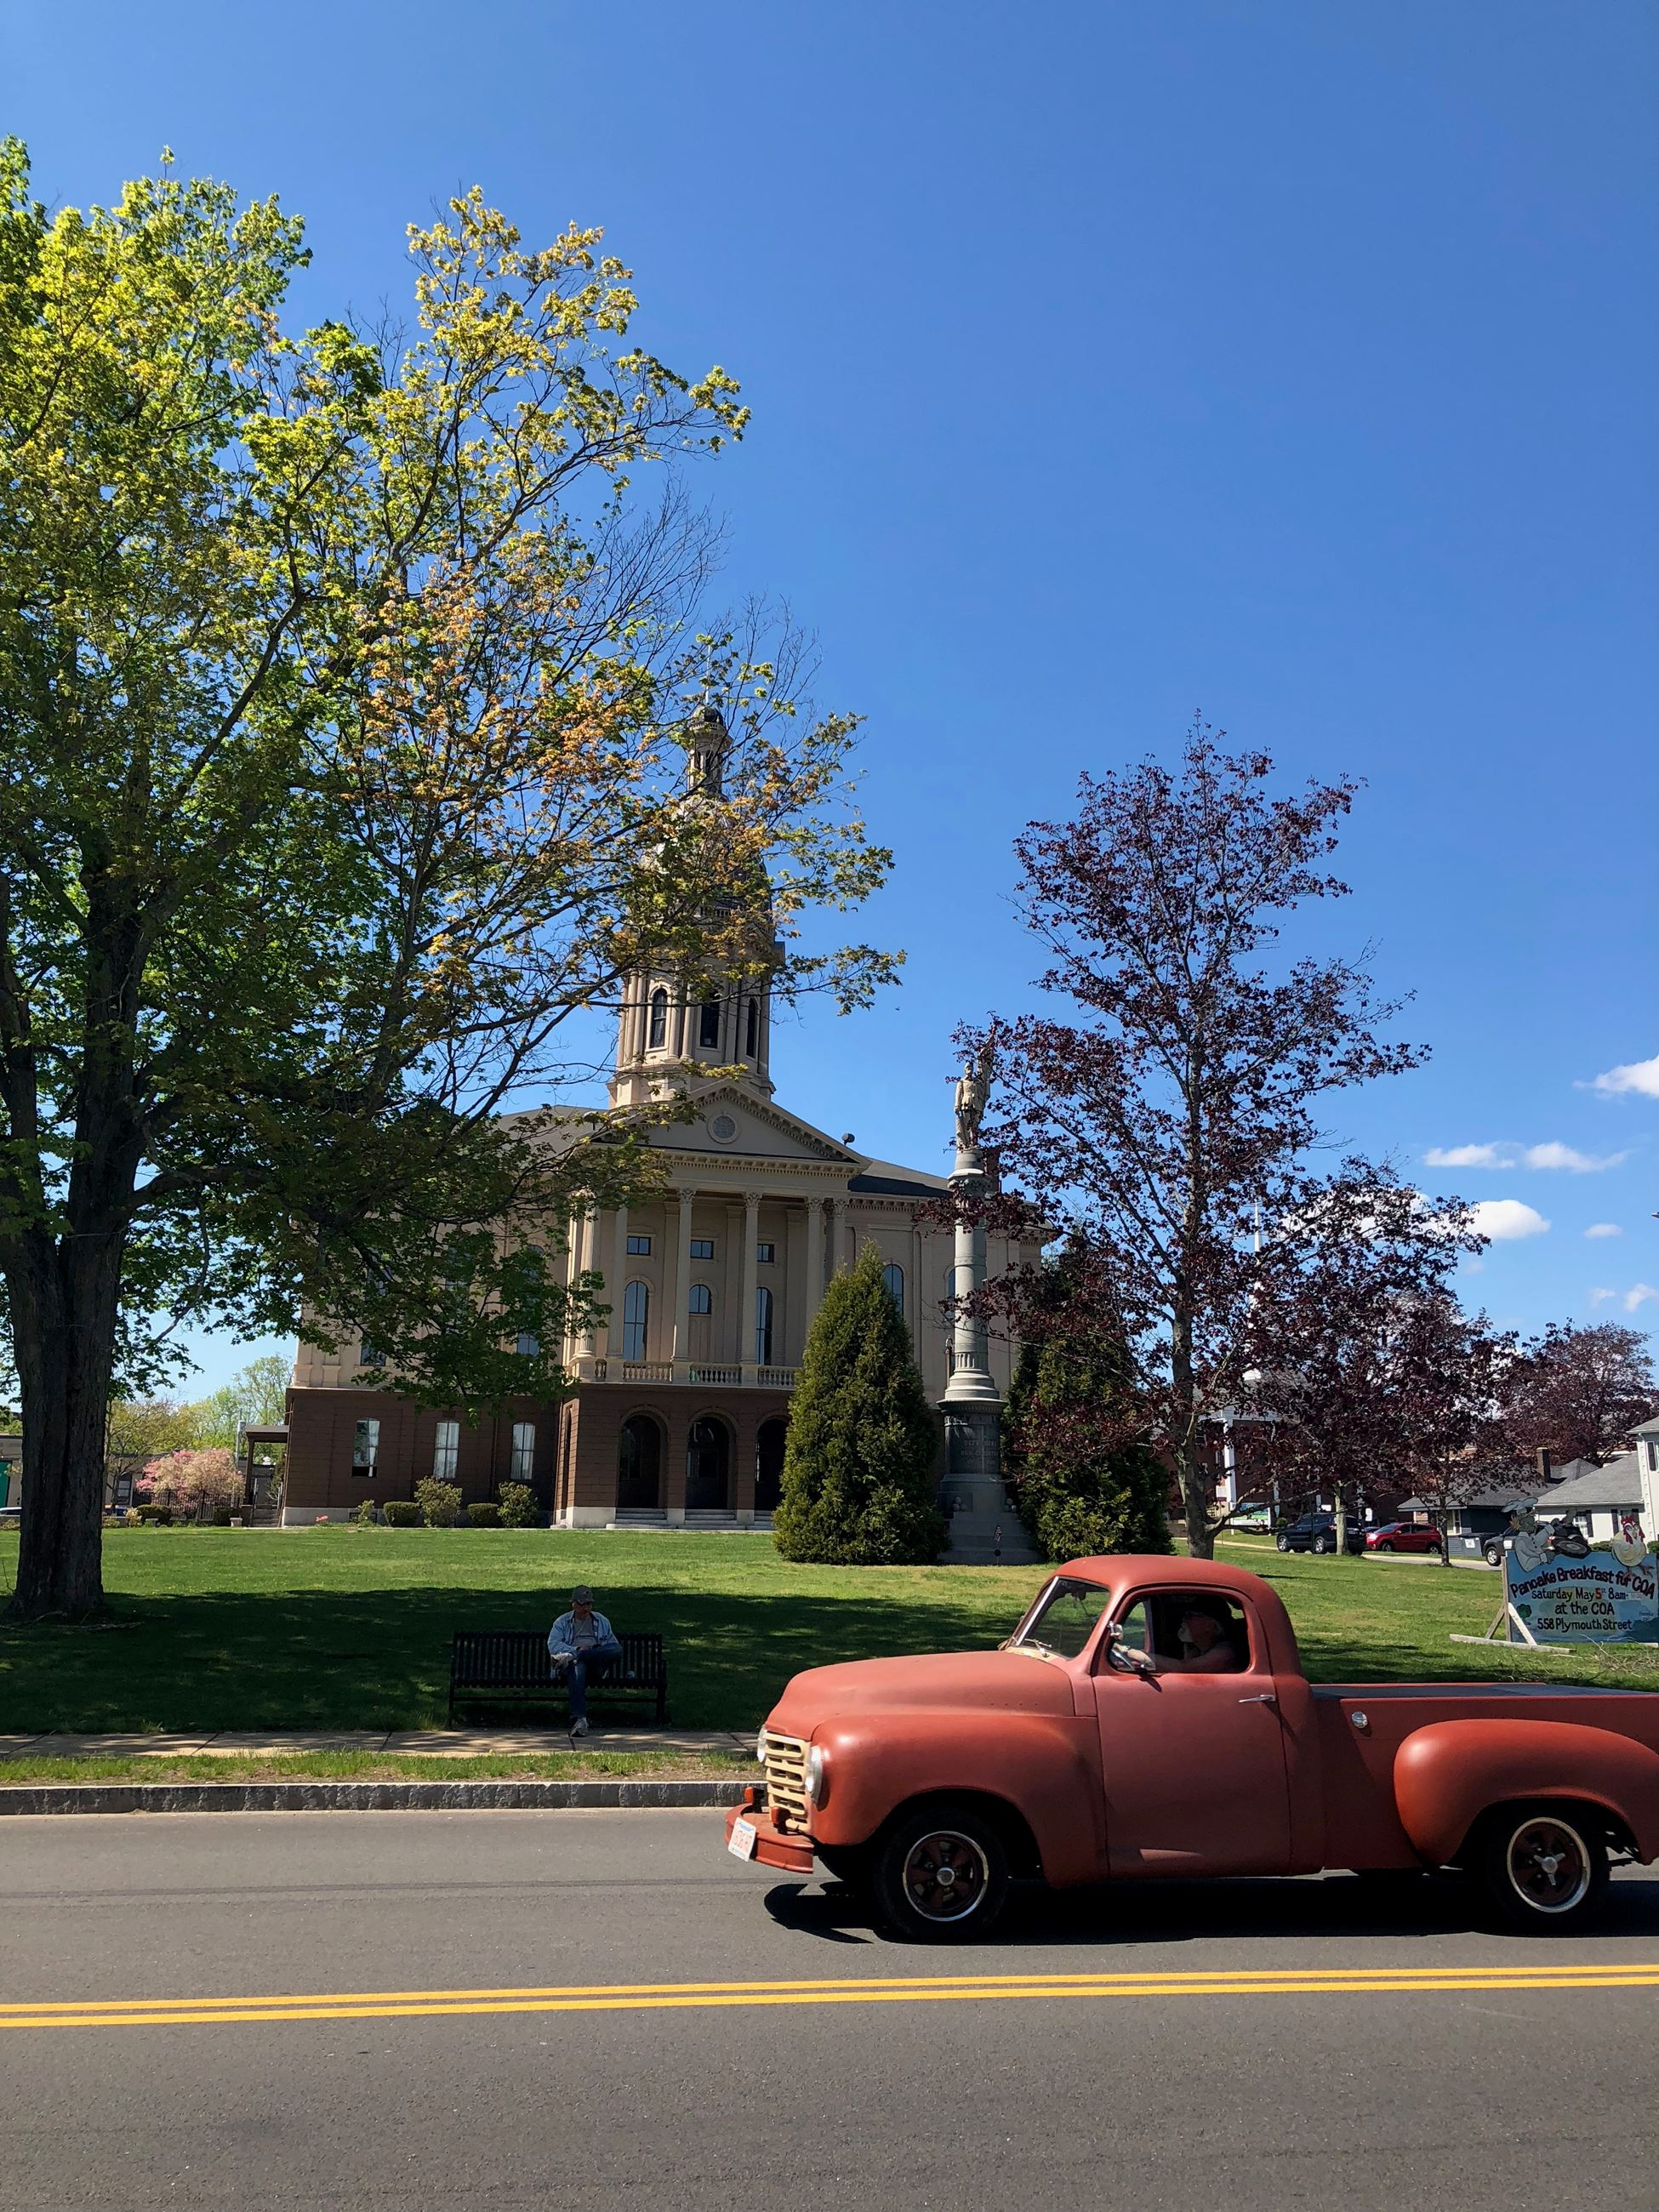 front view of town hall with old truck